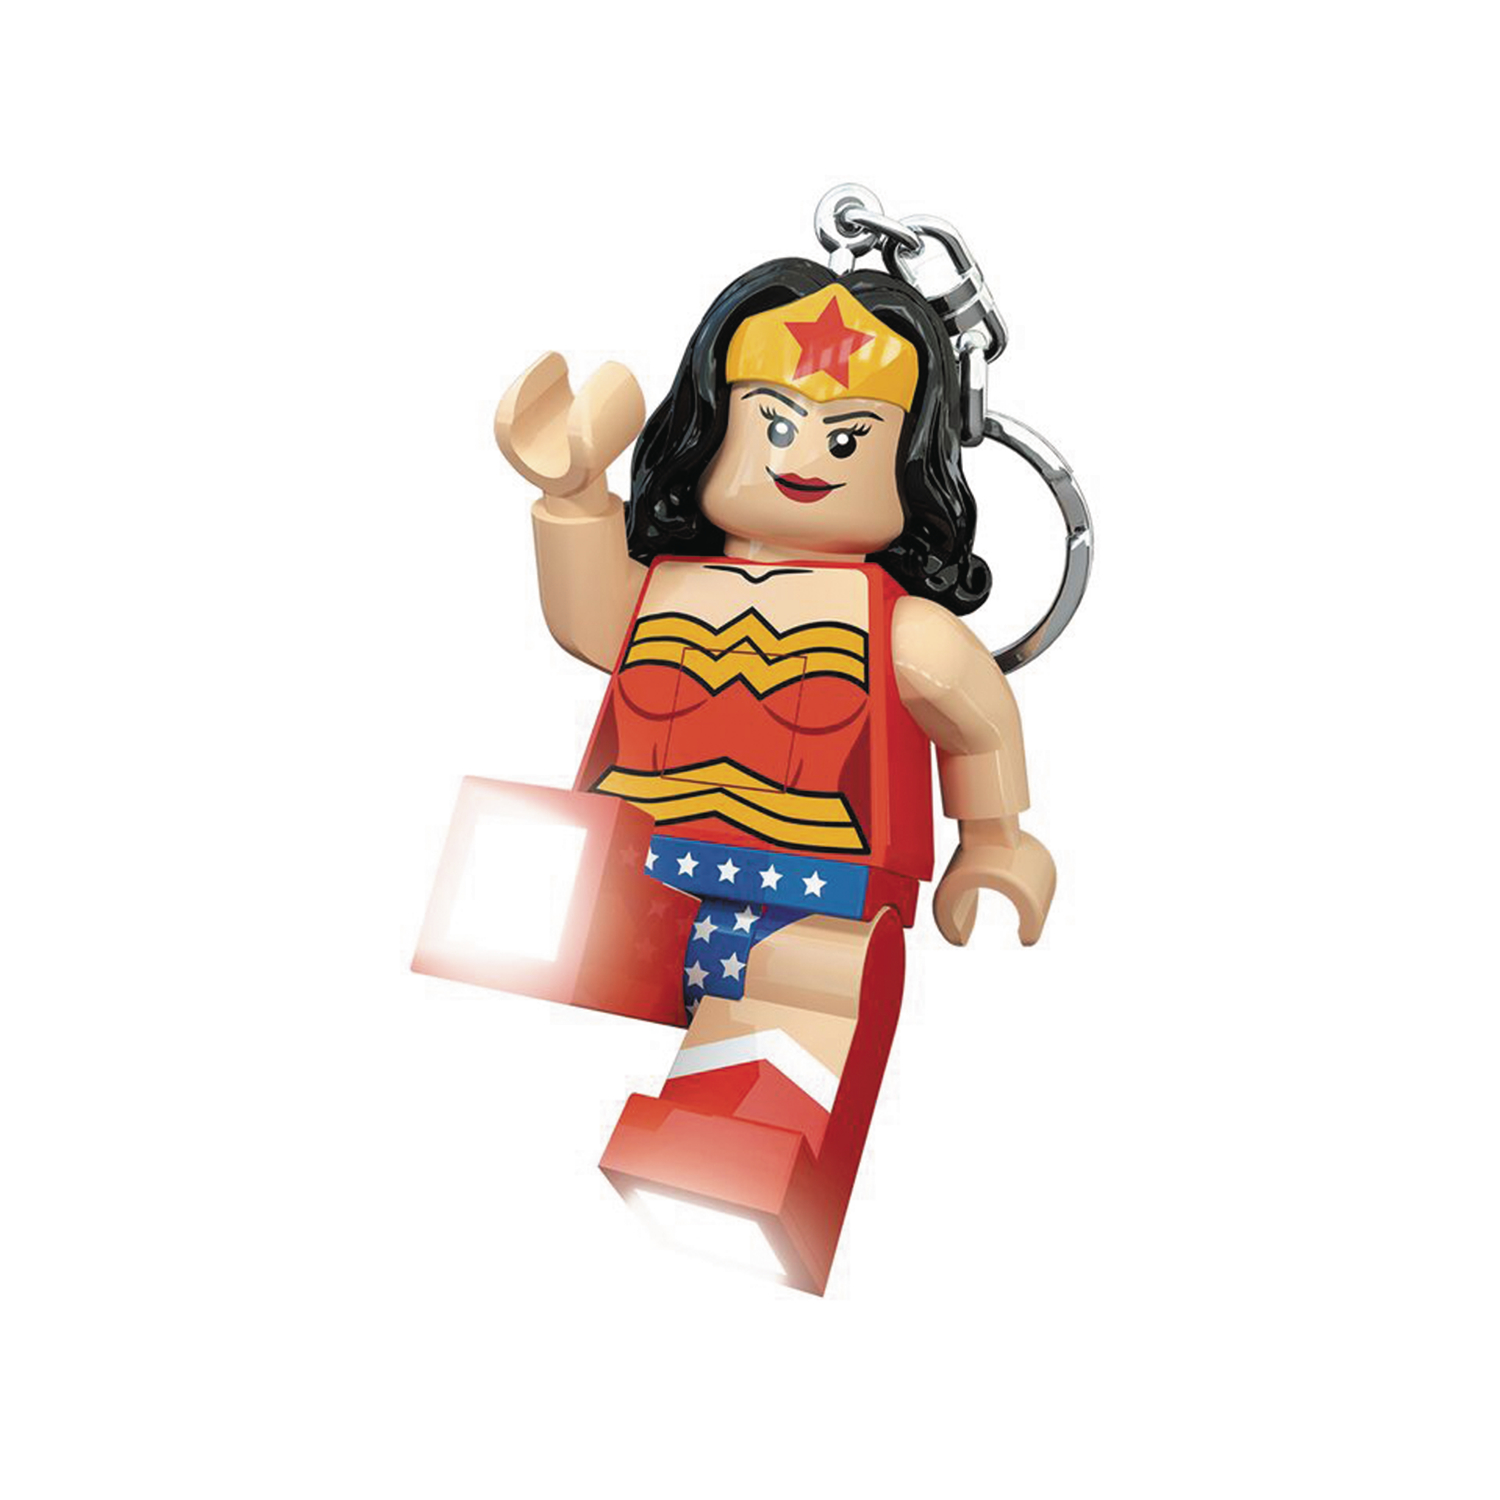 PREVIEWSworld - LEGO WONDER WOMAN KEYCHAIN LED LITE